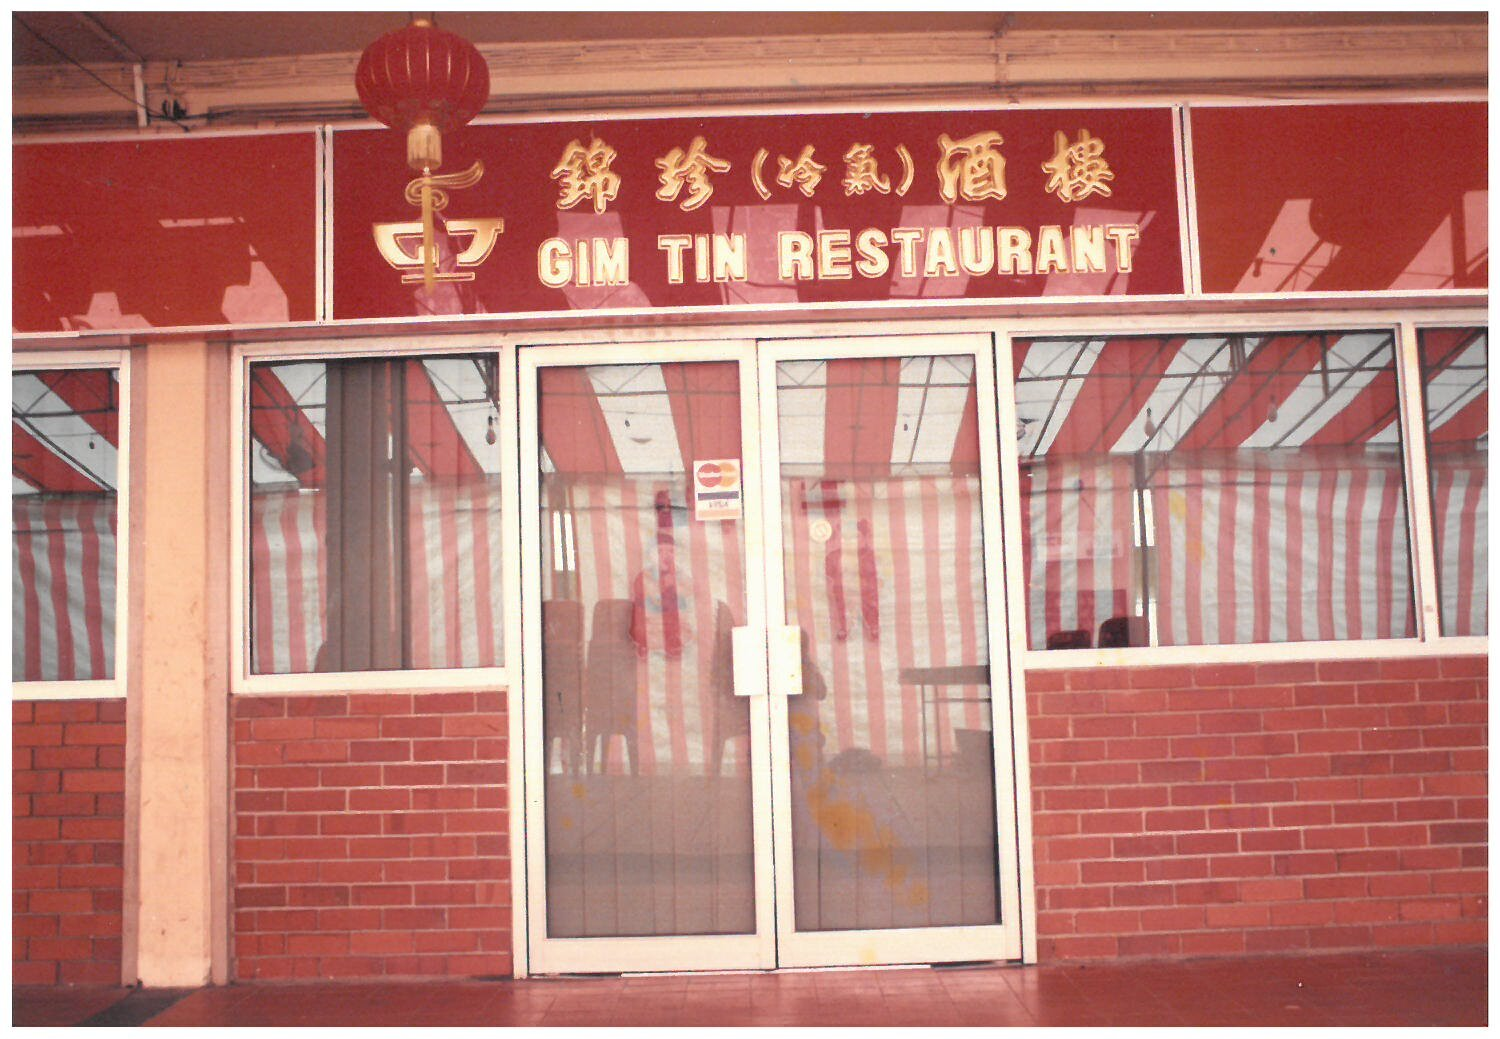 Gim Tim Restaurant at Ang Mo Kio in 1989